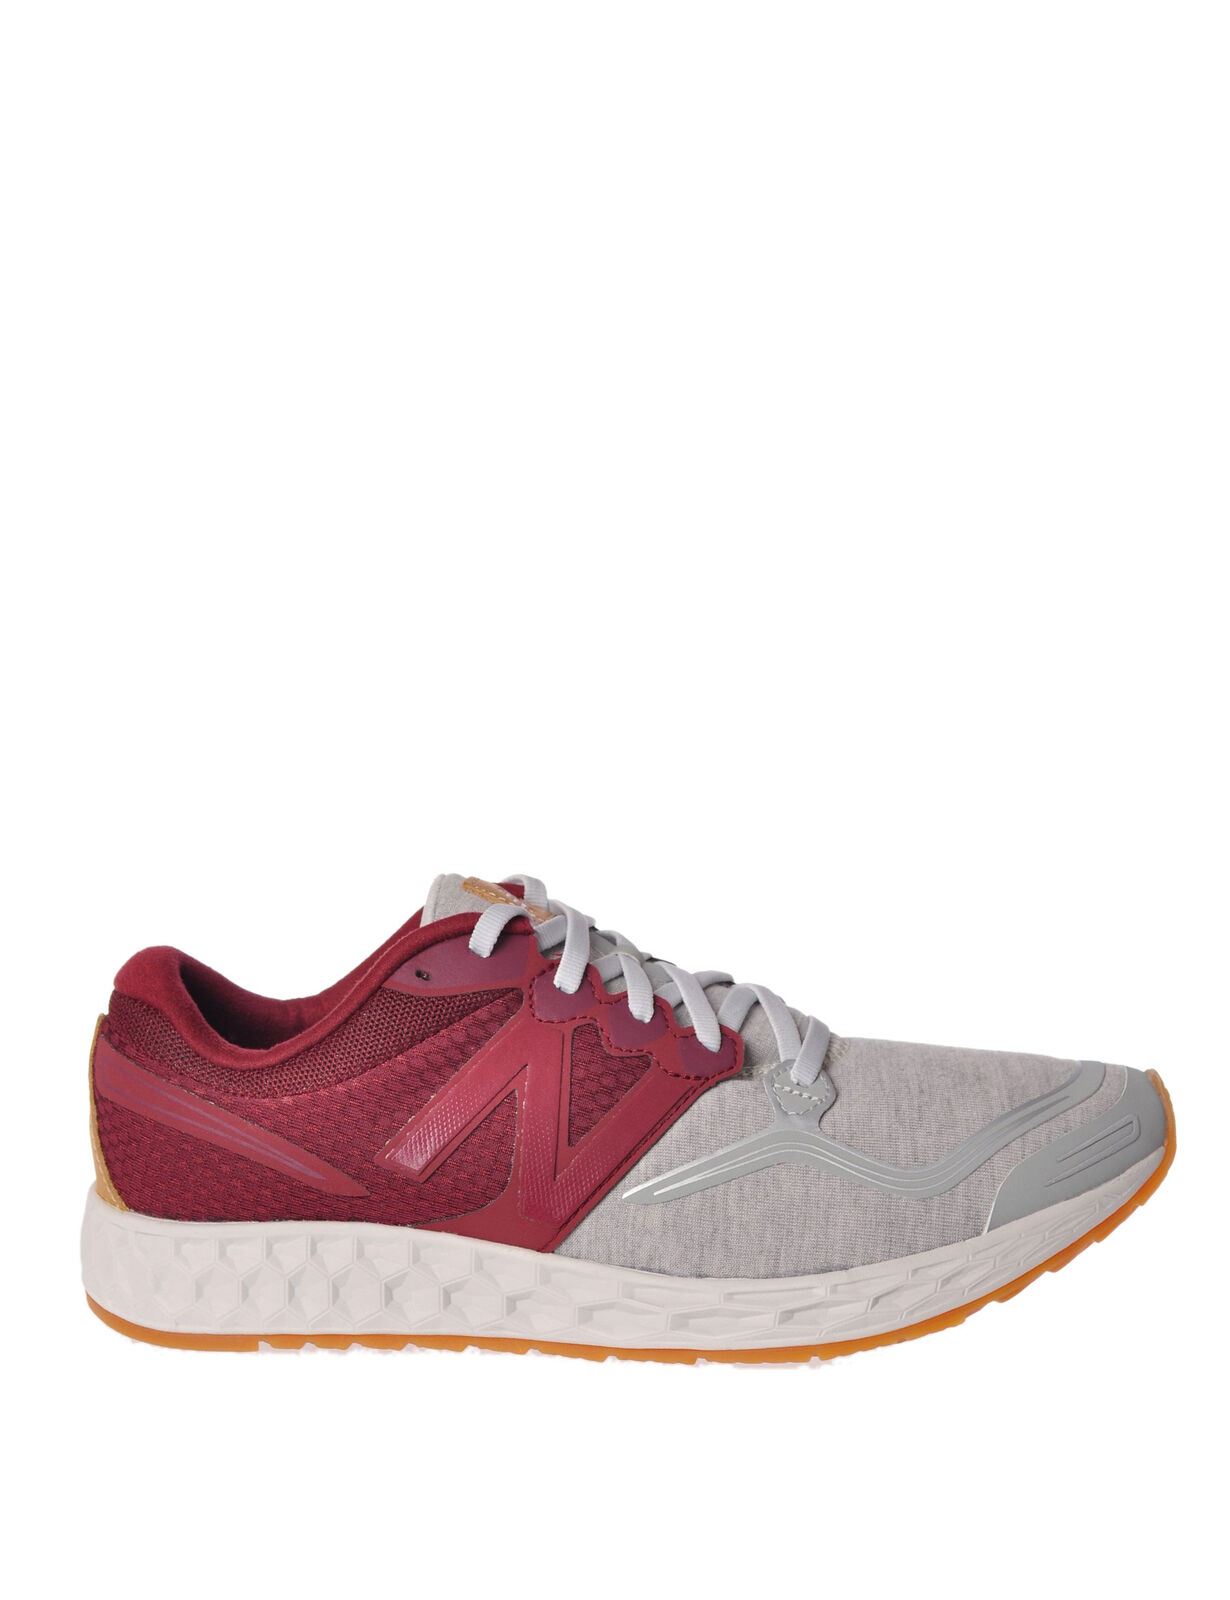 New Balance - Shoes-Sneakers low - Woman - Red - 453515C184520